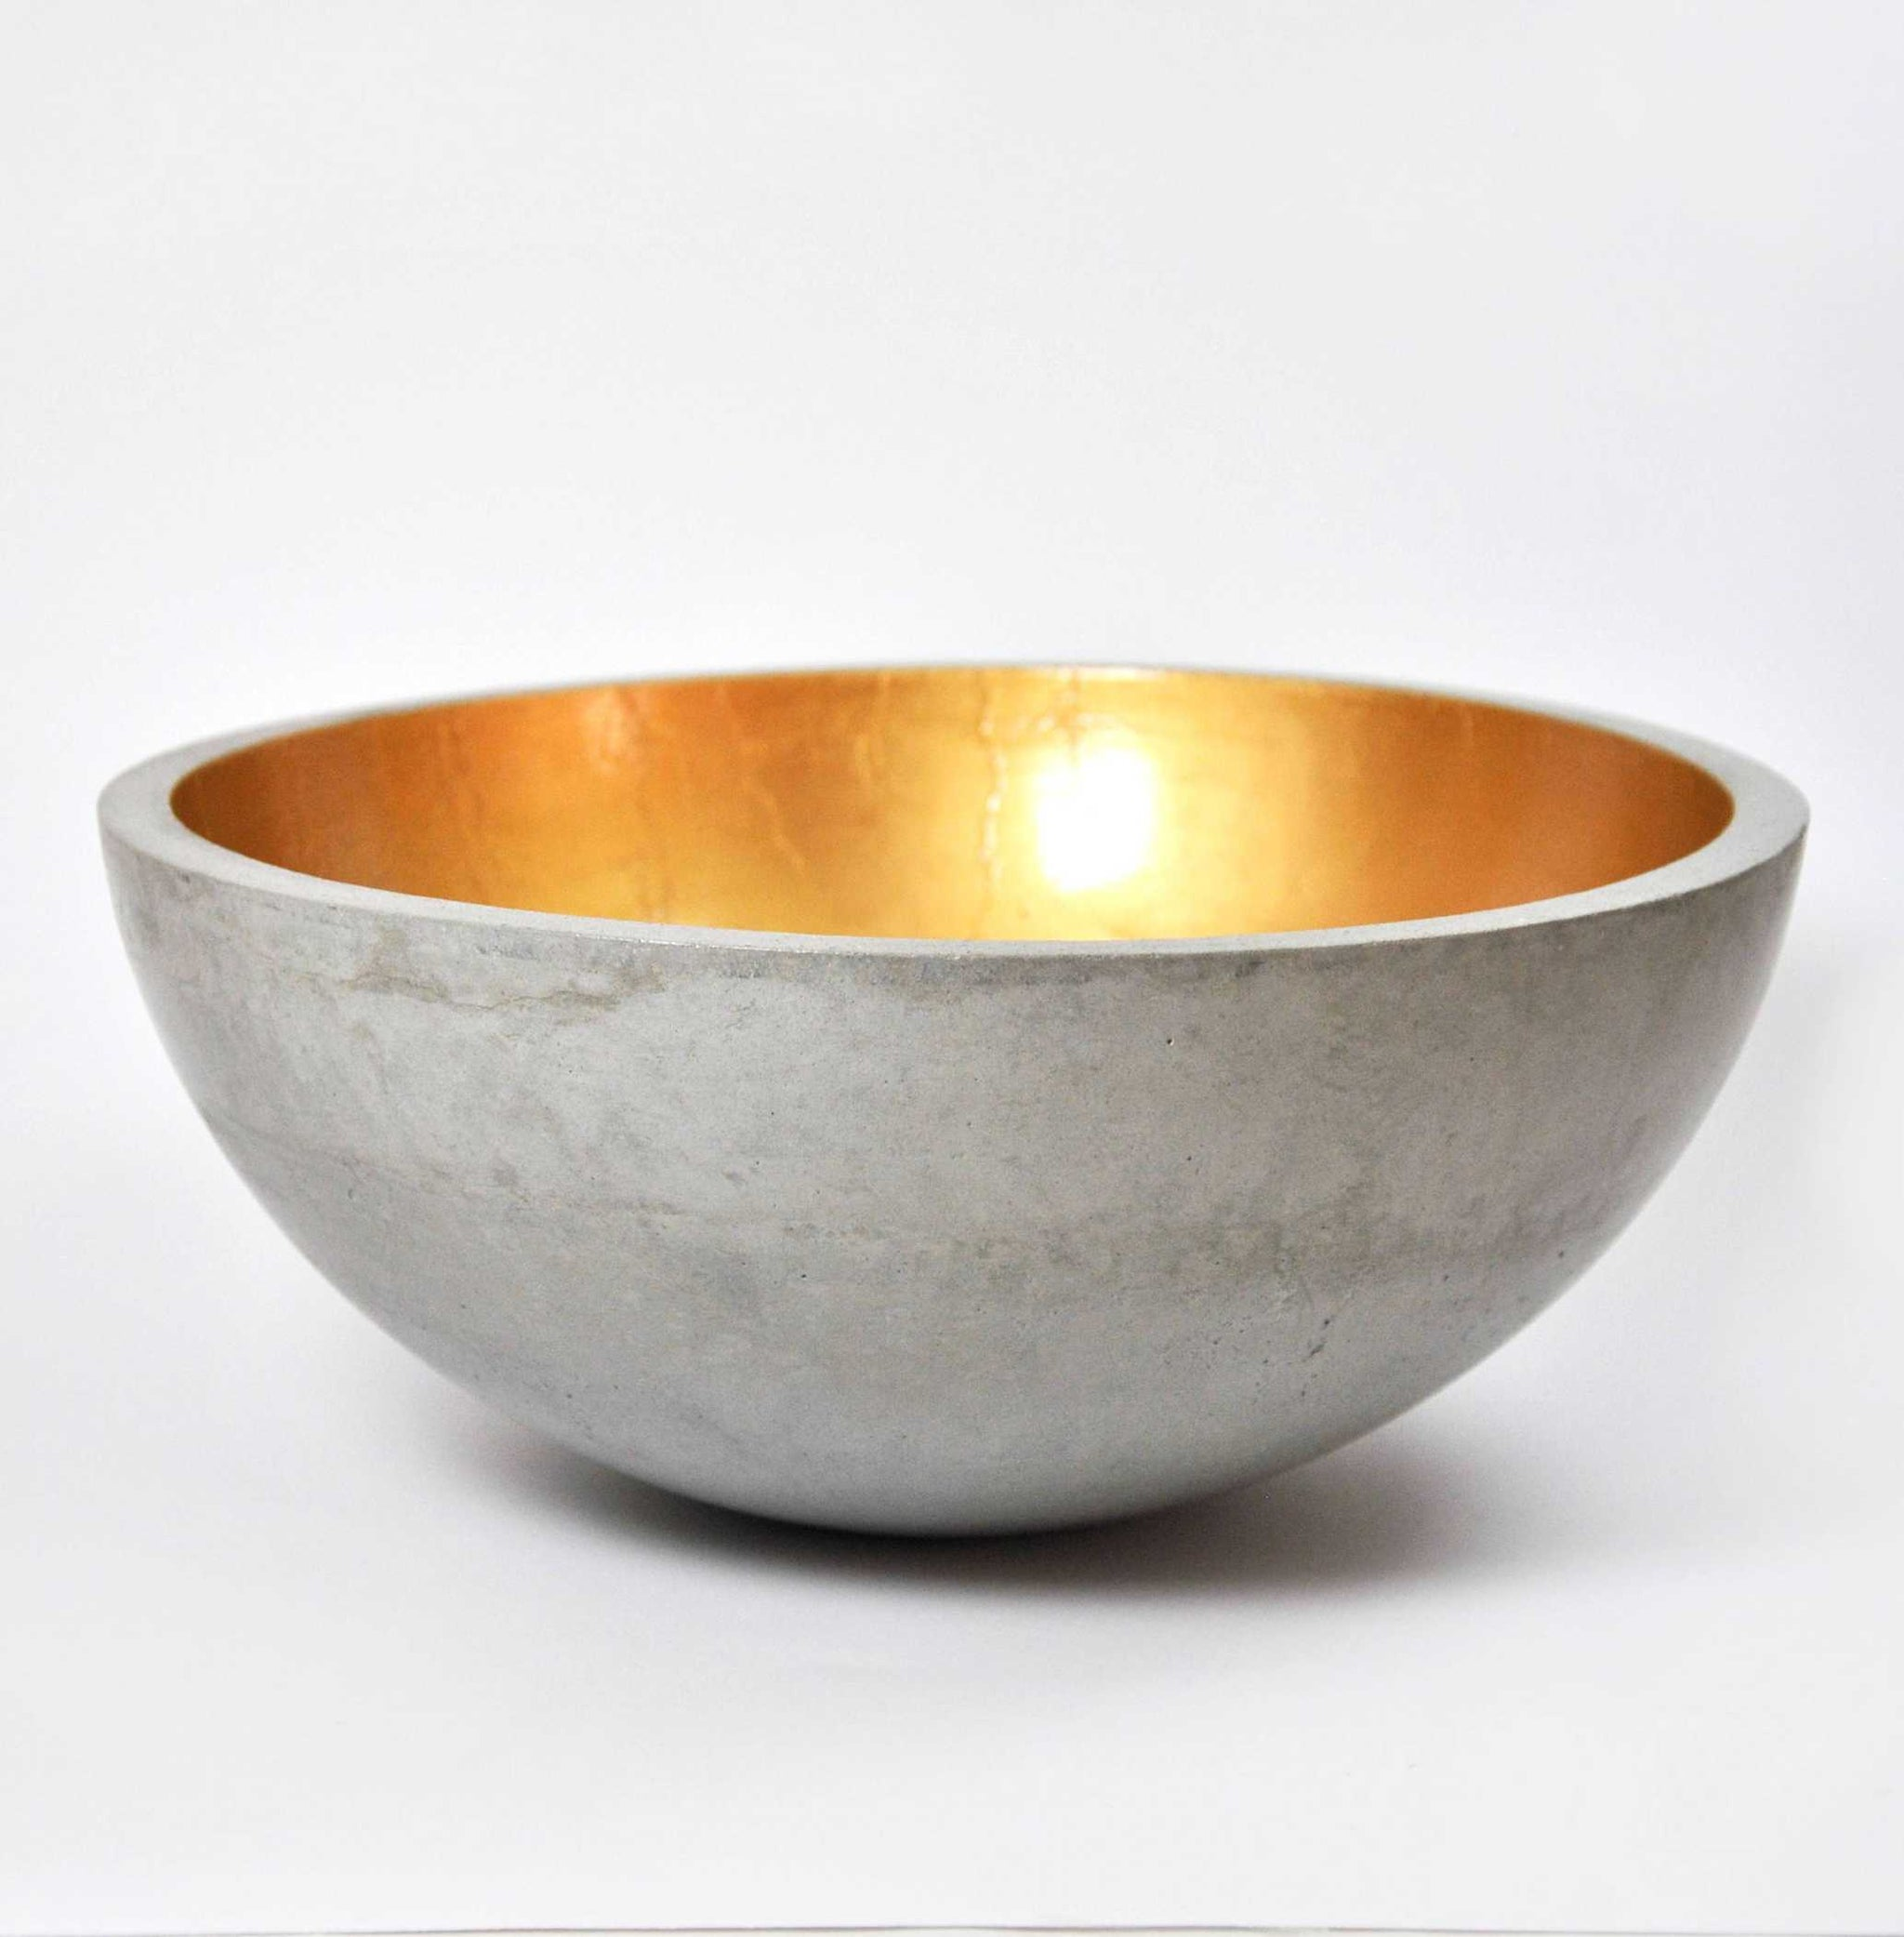 Golden Concrete Large Fruit Bowl Bowls Mica Rica